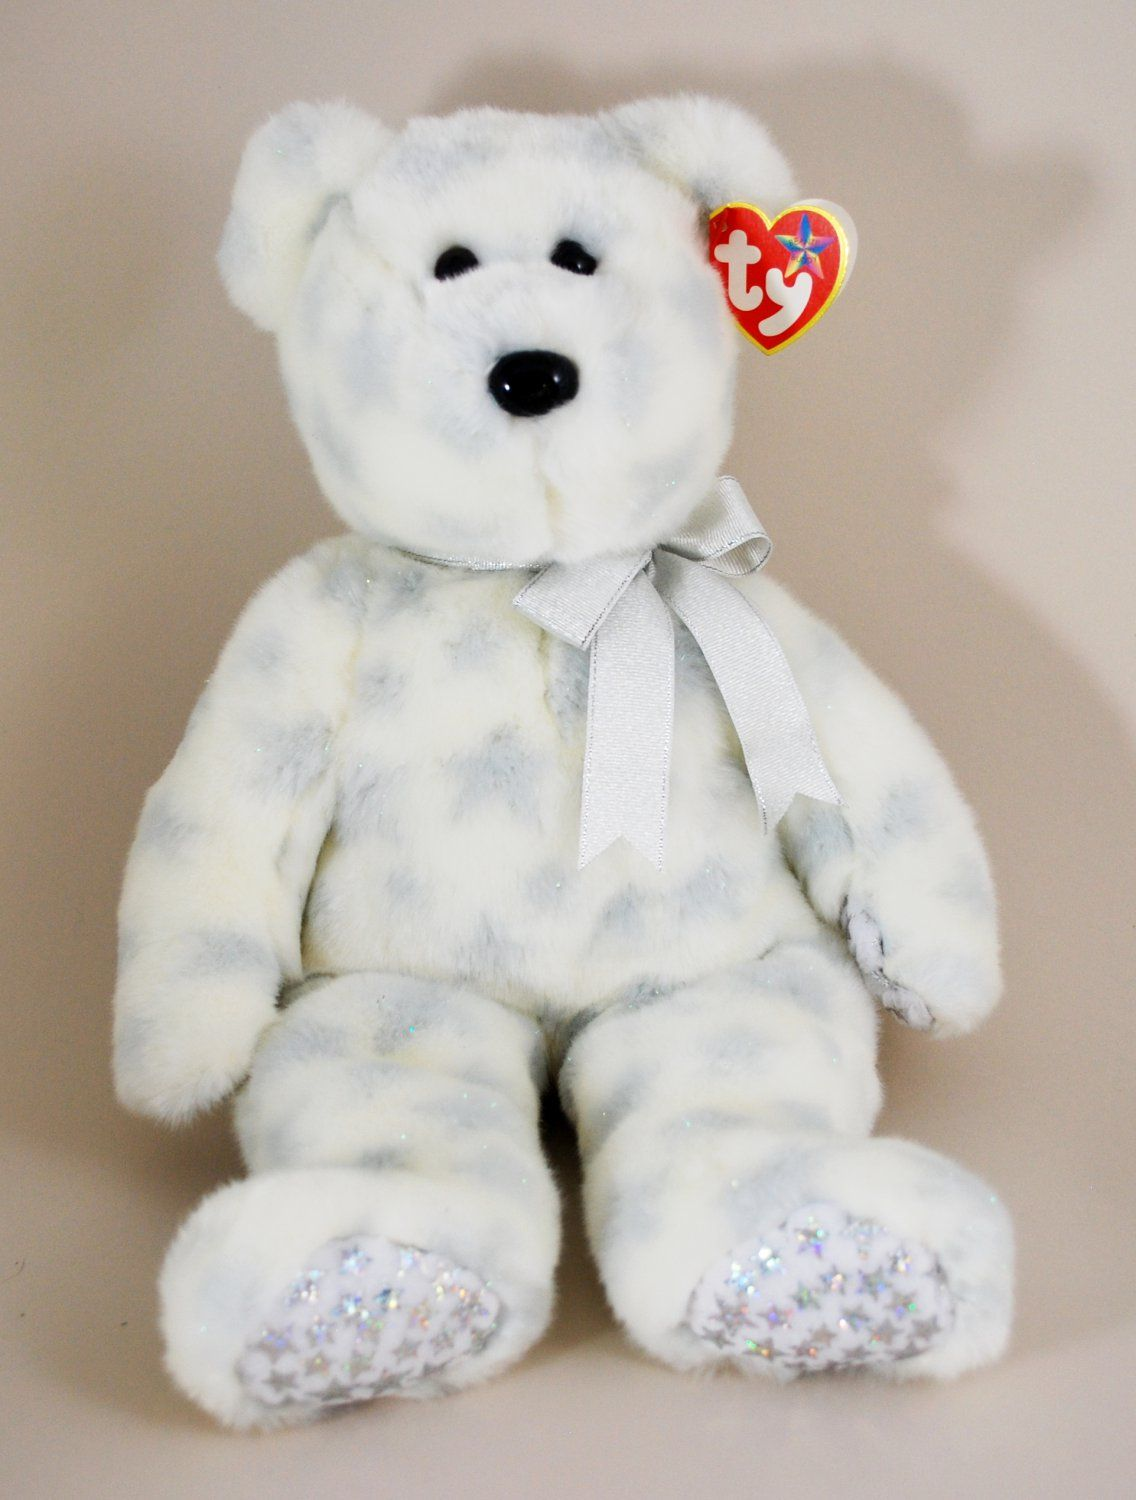 f8d5c3d6522 Ty The Beginning bear beanie buddy is a white and silver plush bear with  silver stars on his paw and feet pads. He has a silver ribbon around his  neck.